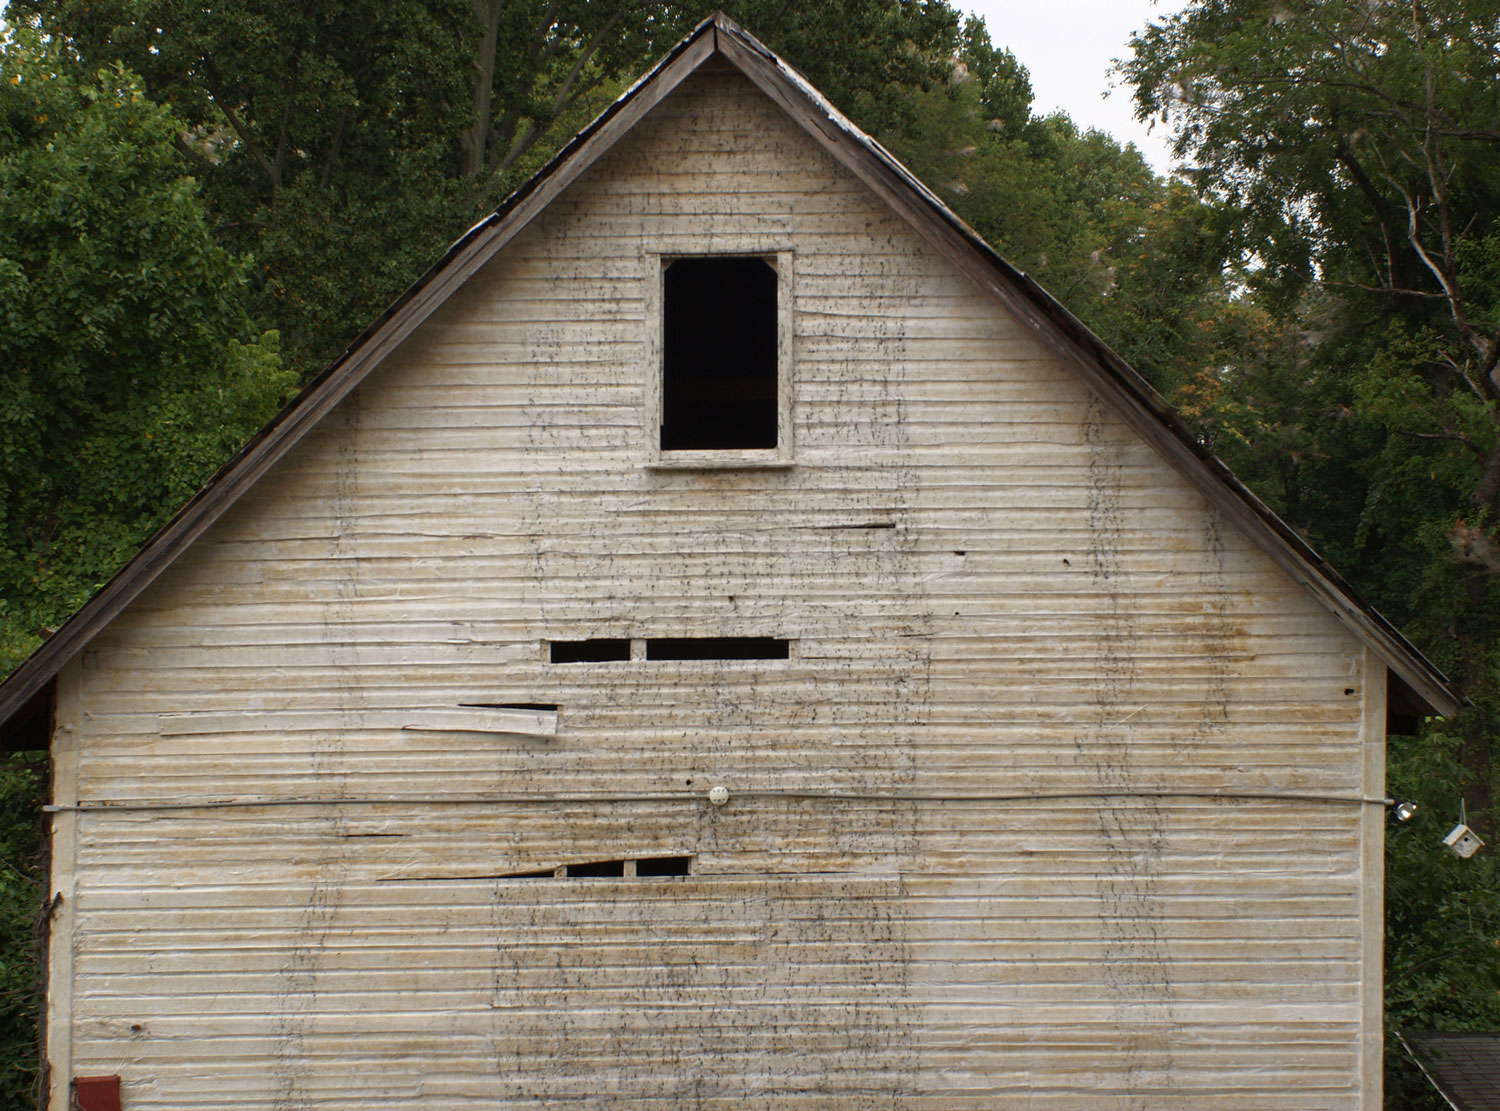 Human Birdhouse,  wooden barn, charcoal, washi, 2008-2009. Site-specific installation at the Schuylkill Center for Environment Education in Pennsylvania, PA, USA  (wall: 26 x 41 feet).